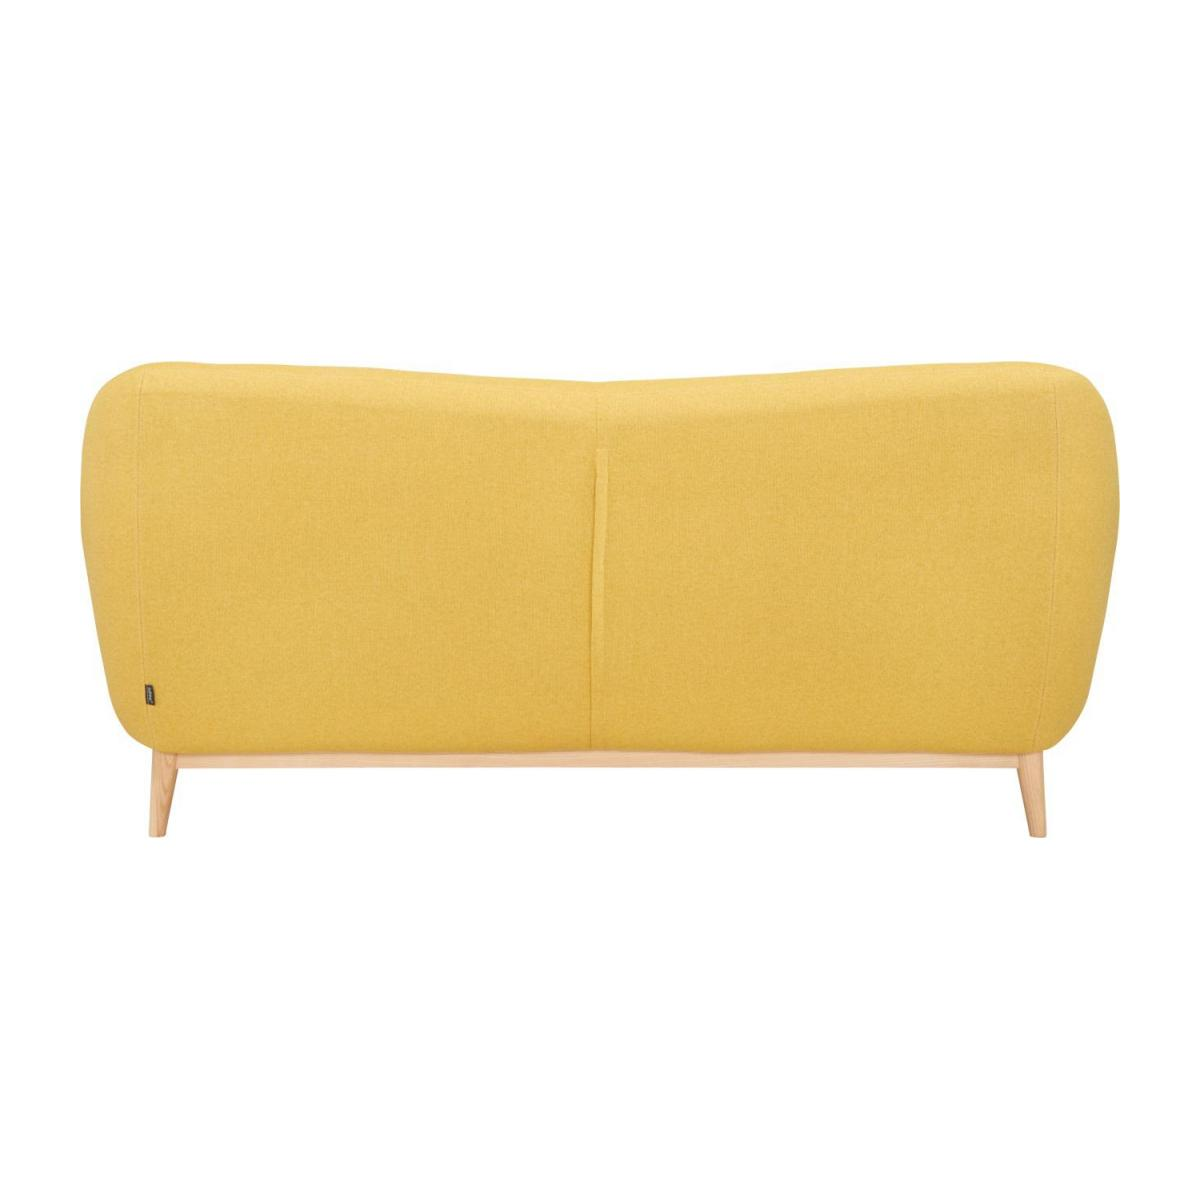 3-seat sofa made of fabric, yellow n°3